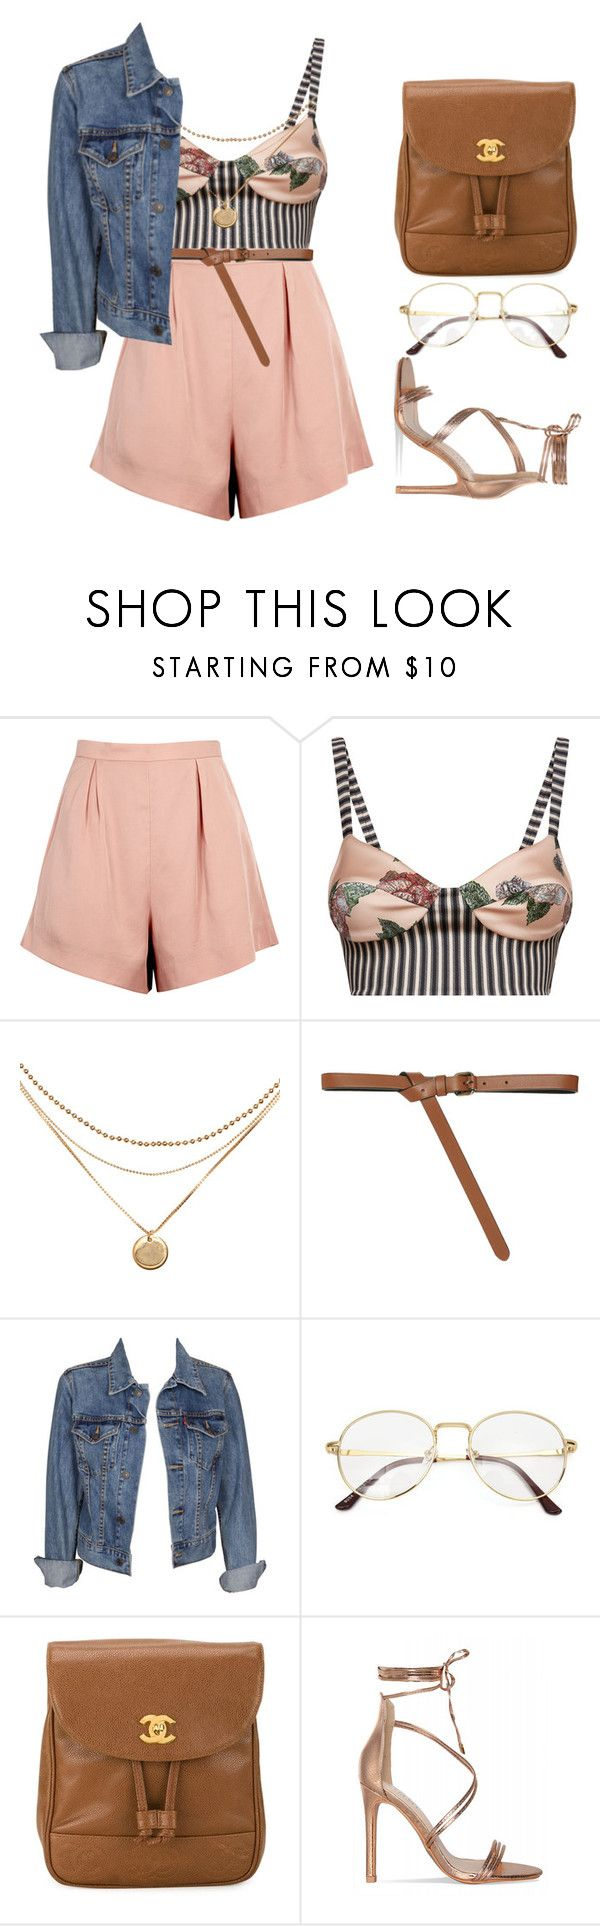 @readyornot? by melanie-pacheco on Polyvore featuring moda, Levi's, La Perla, Finders Keepers, Chanel and Paule Ka